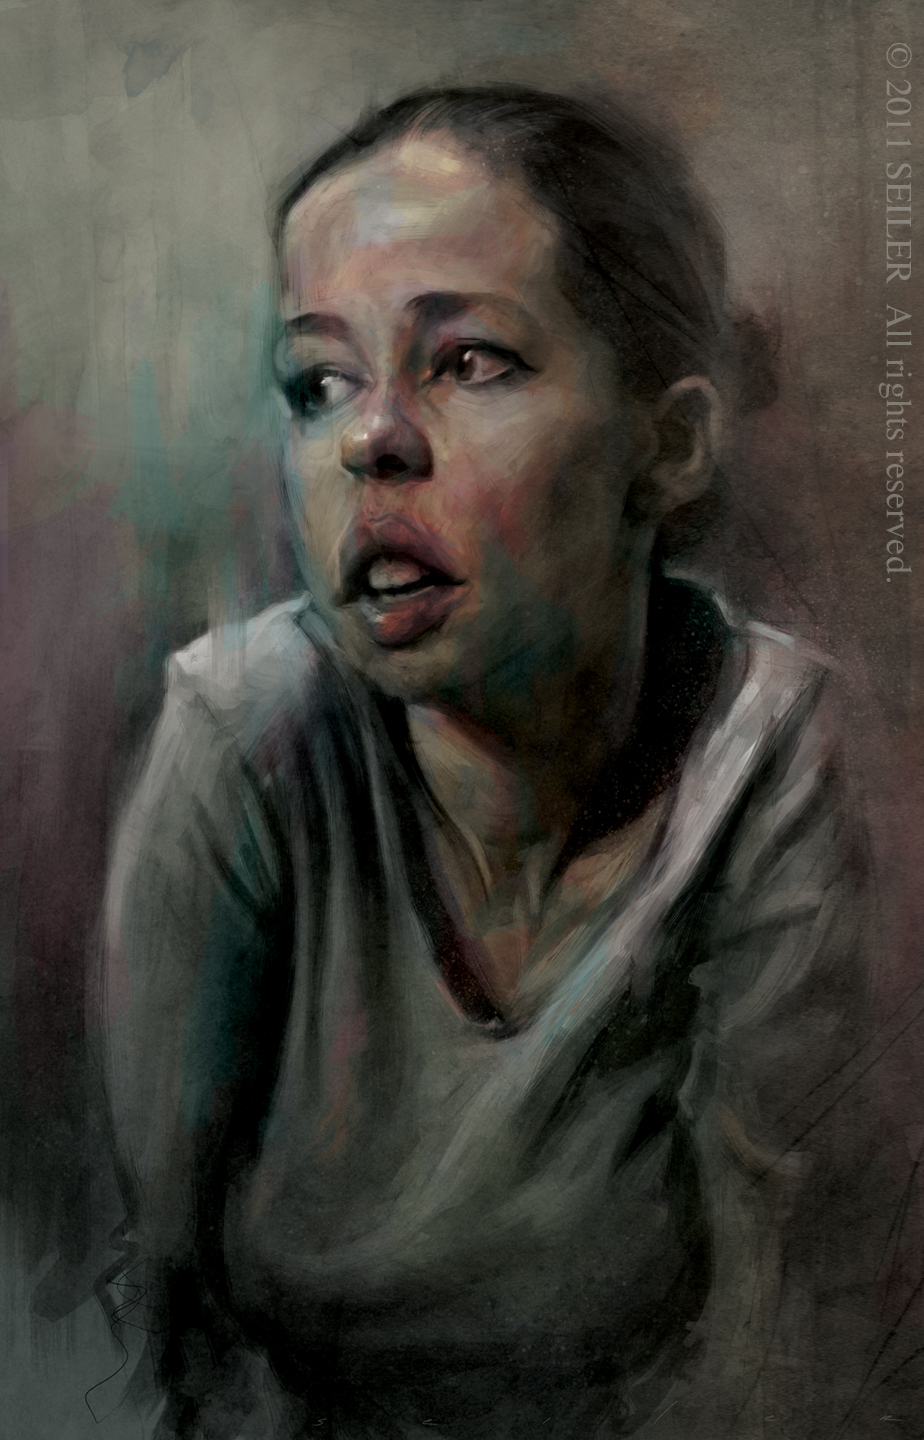 jenny saville an amazing artist i did this in about four to five hours